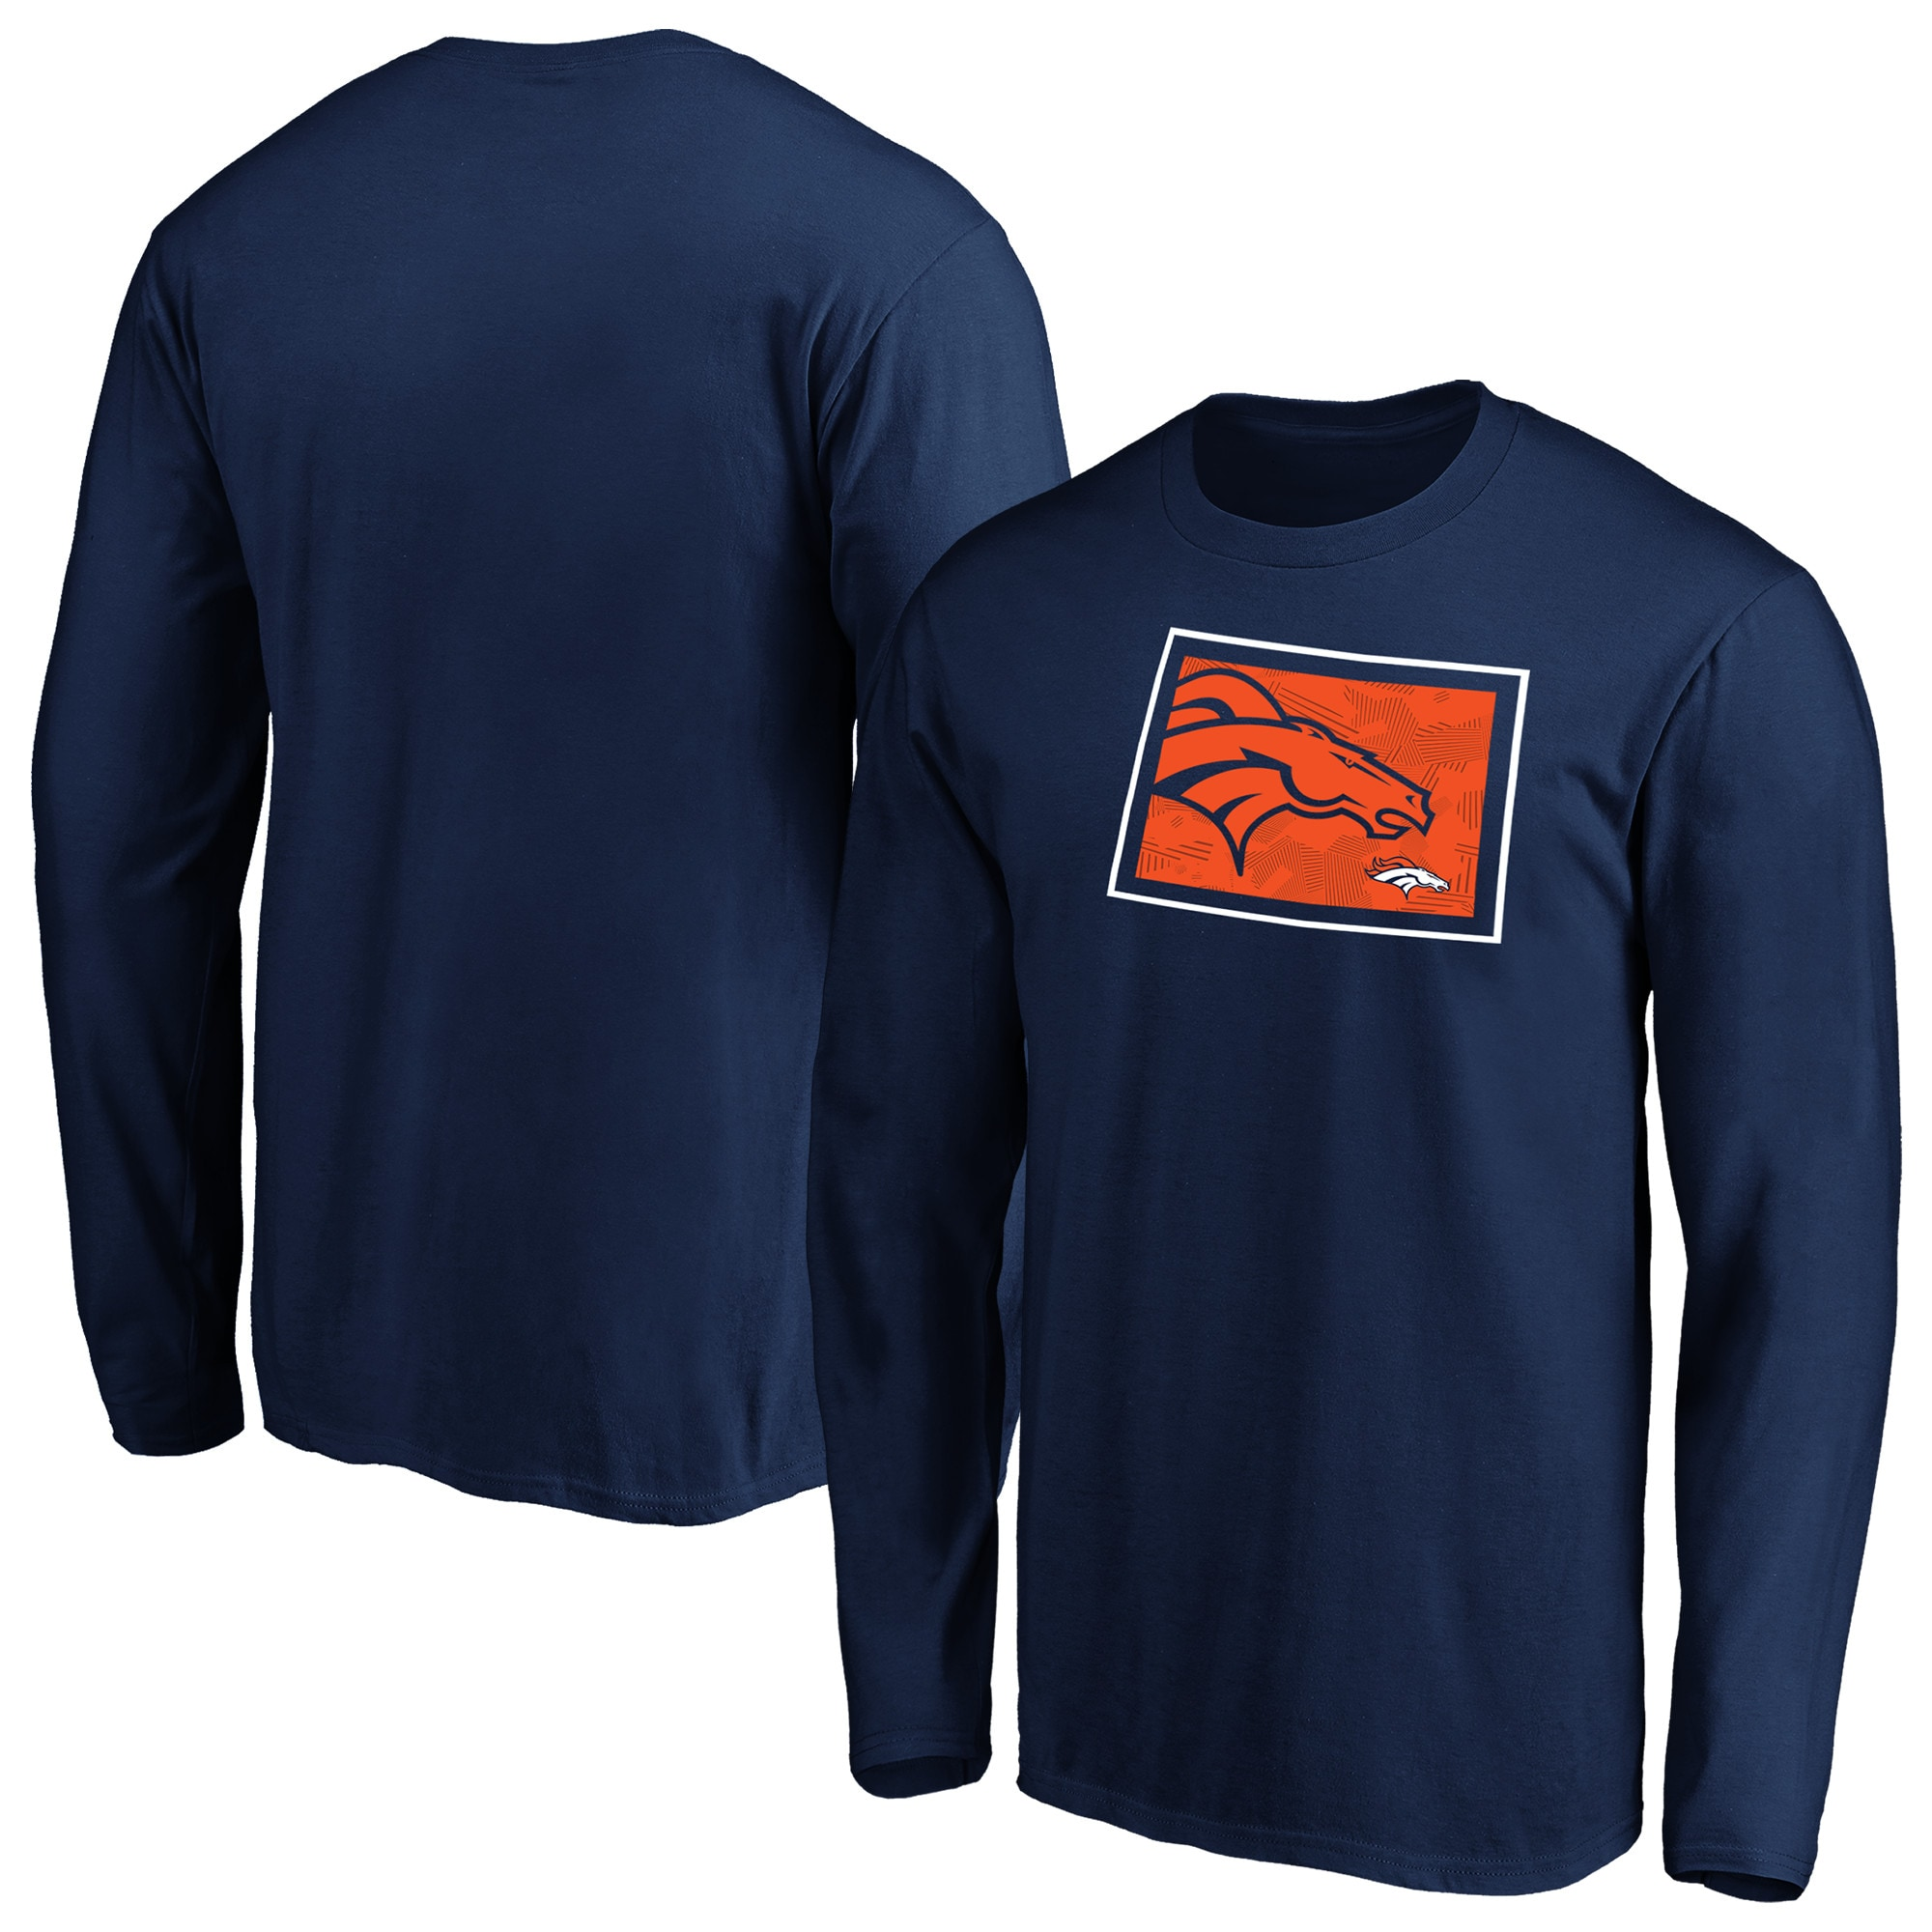 Denver Broncos NFL Pro Line by Fanatics Branded Iconic State Pride Long Sleeve T-Shirt - Navy